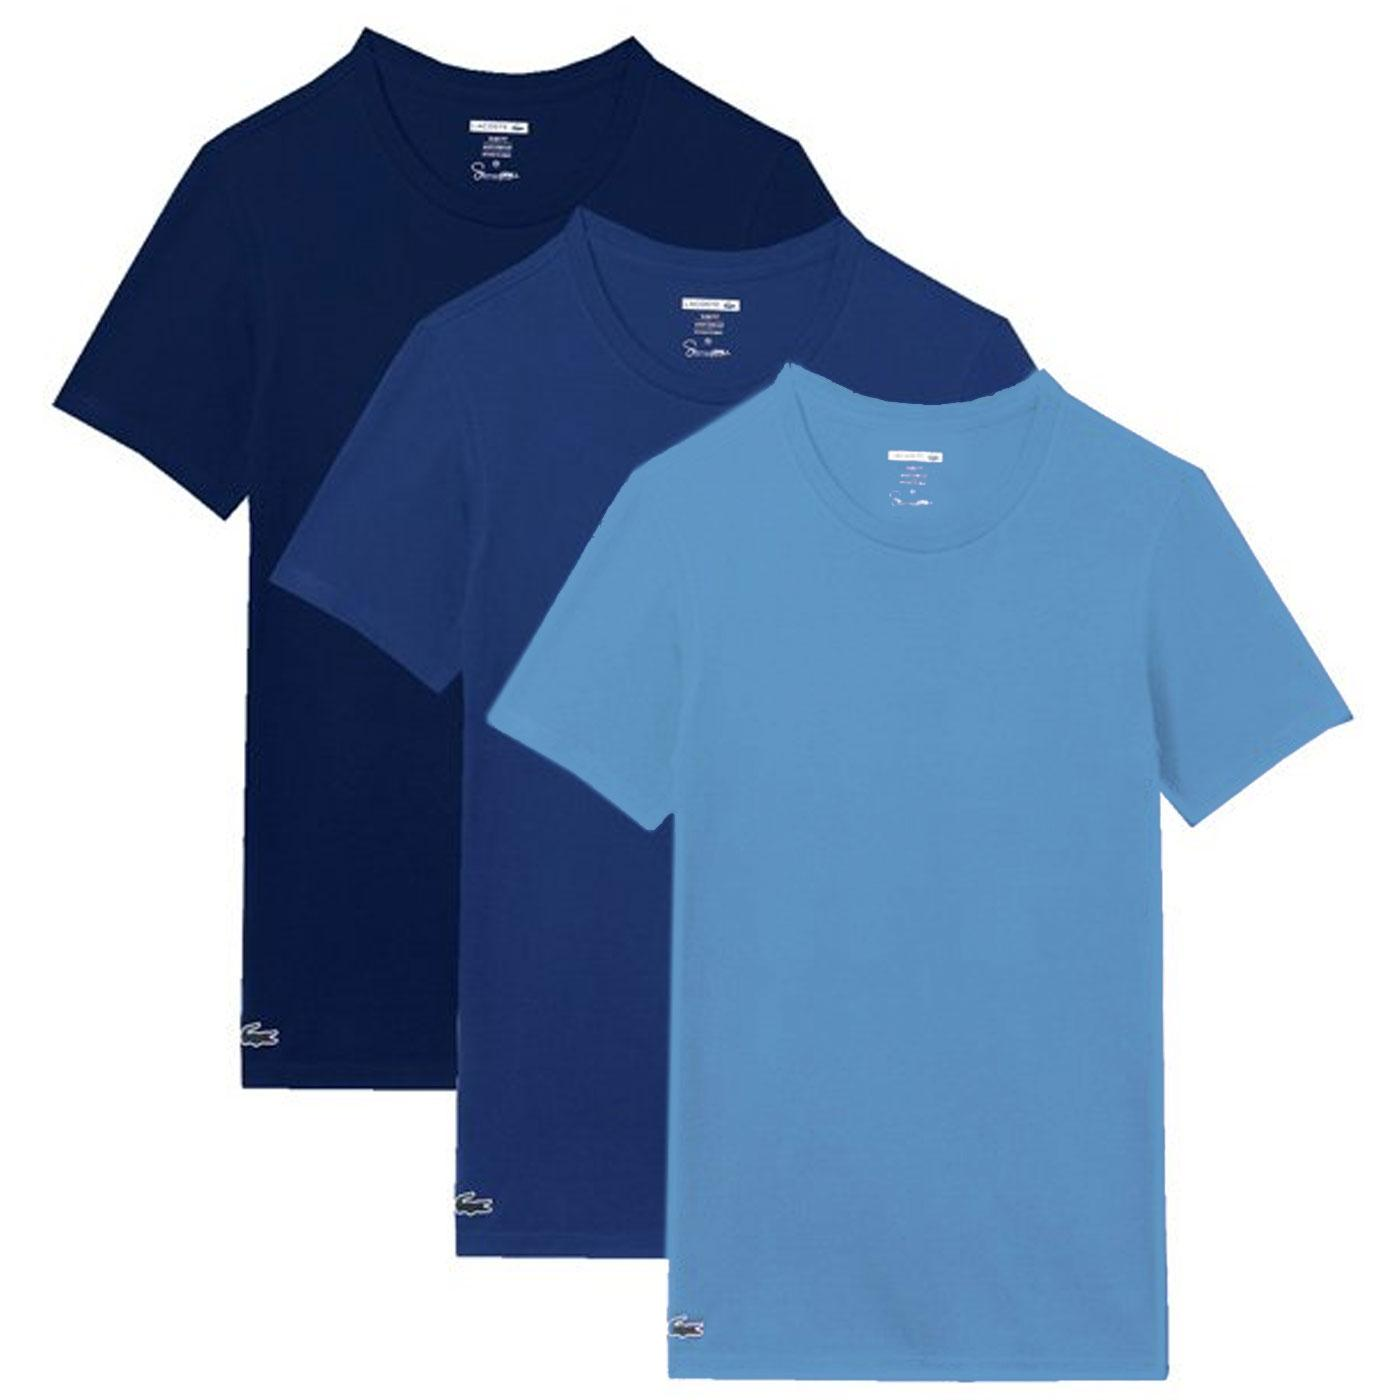 LACOSTE Men's 3 Pack Crew Neck T-Shirts in Blues